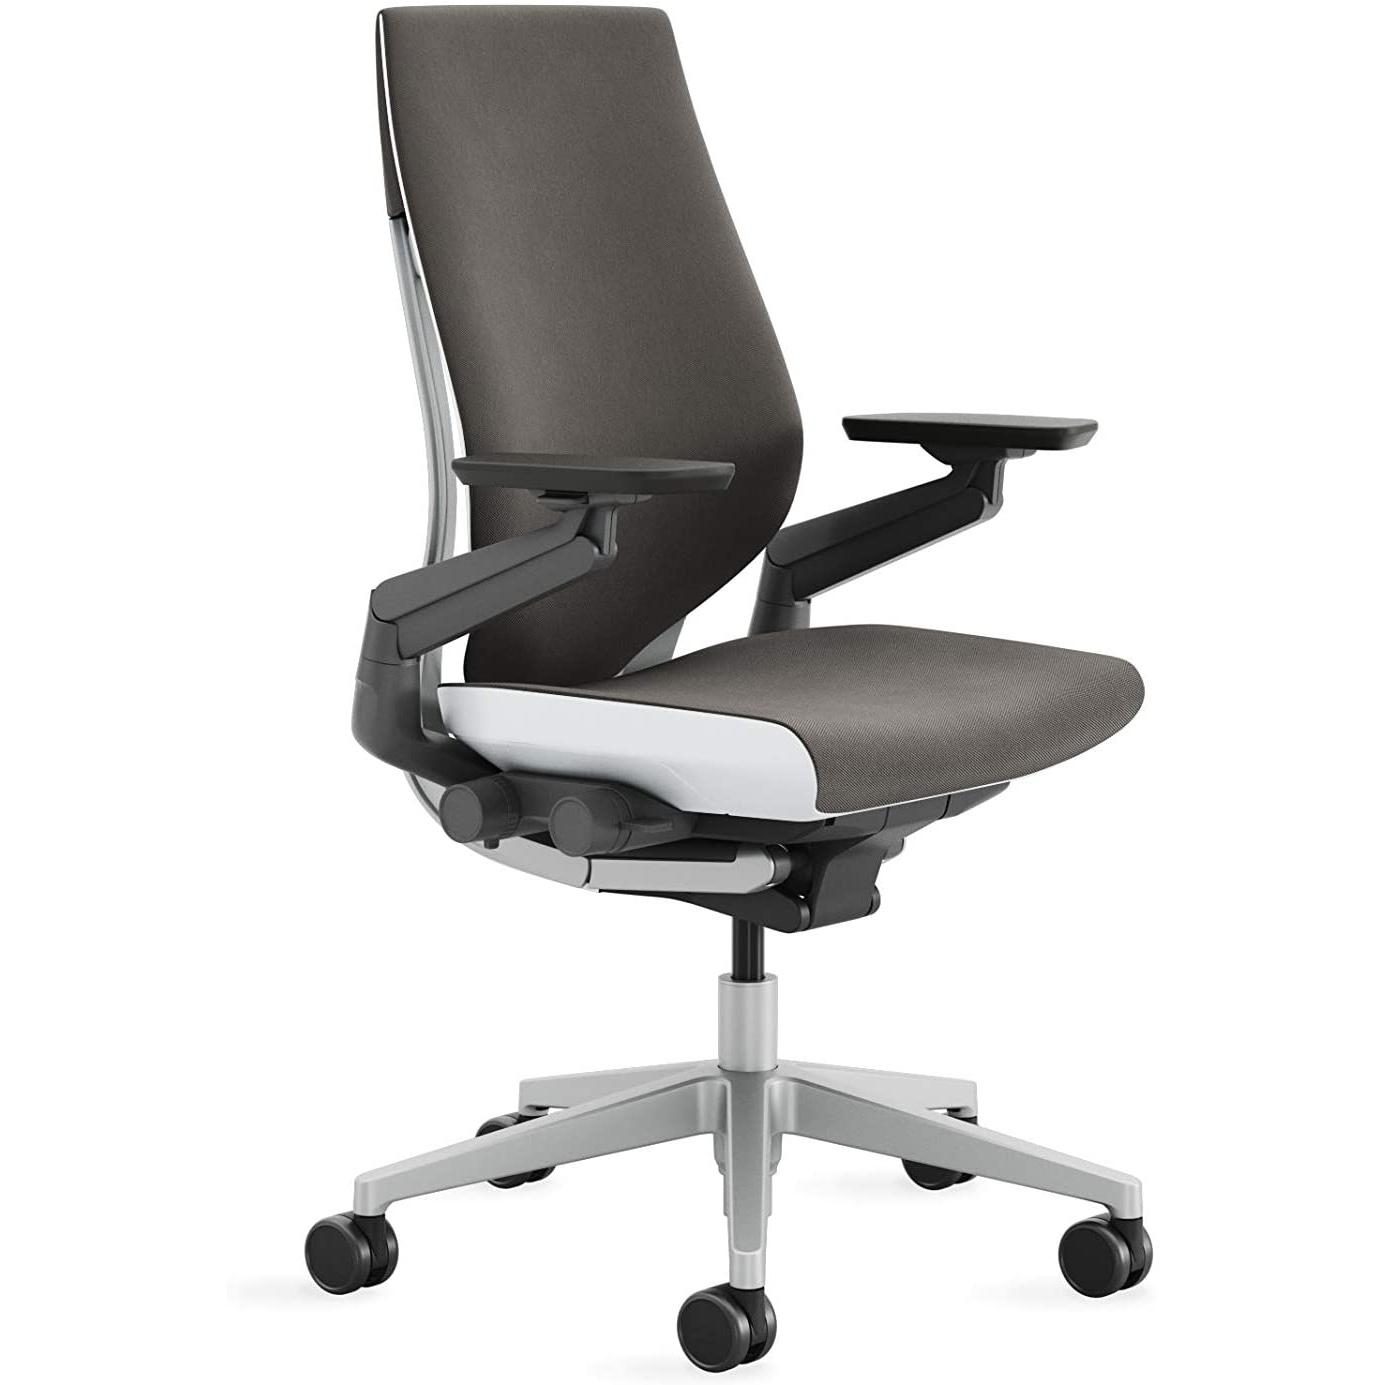 Steelcase Gesture Office Chair for $825.16 Shipped